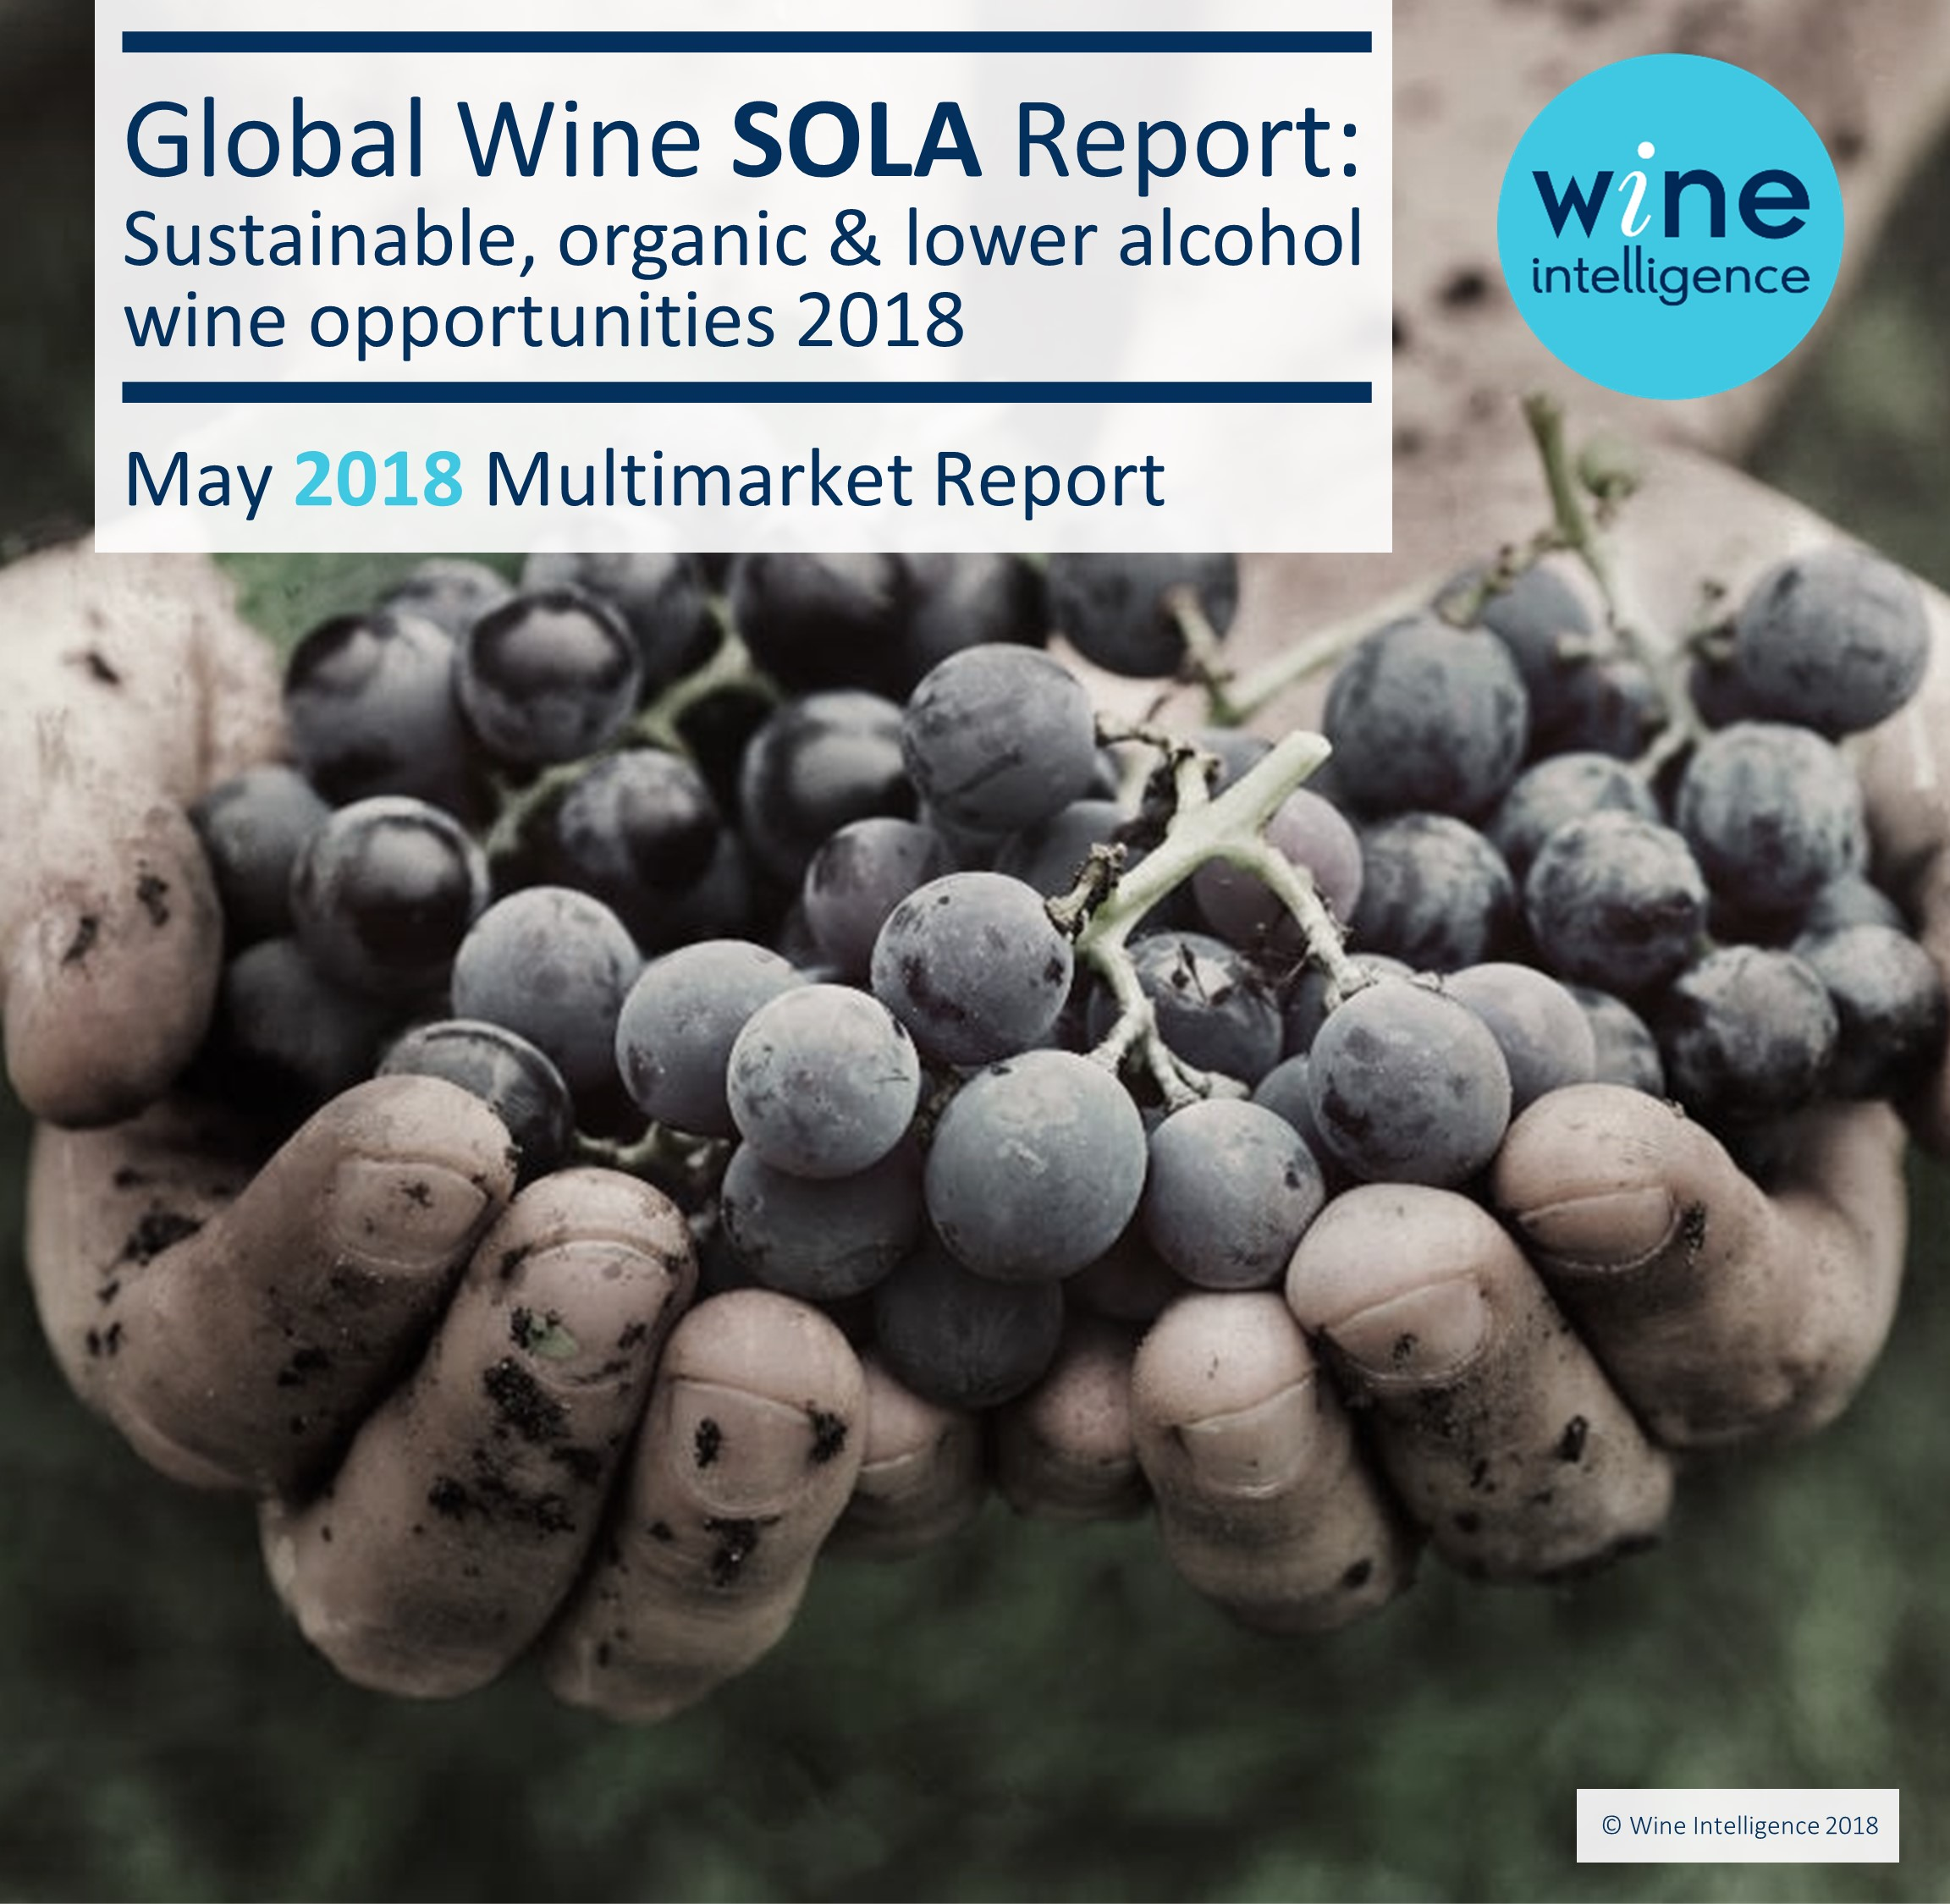 SOLA - Press Release: Young consumers in Australia are more comfortable buying wine in alternative size formats compared to their older peers, according to a new report by Wine Intelligence